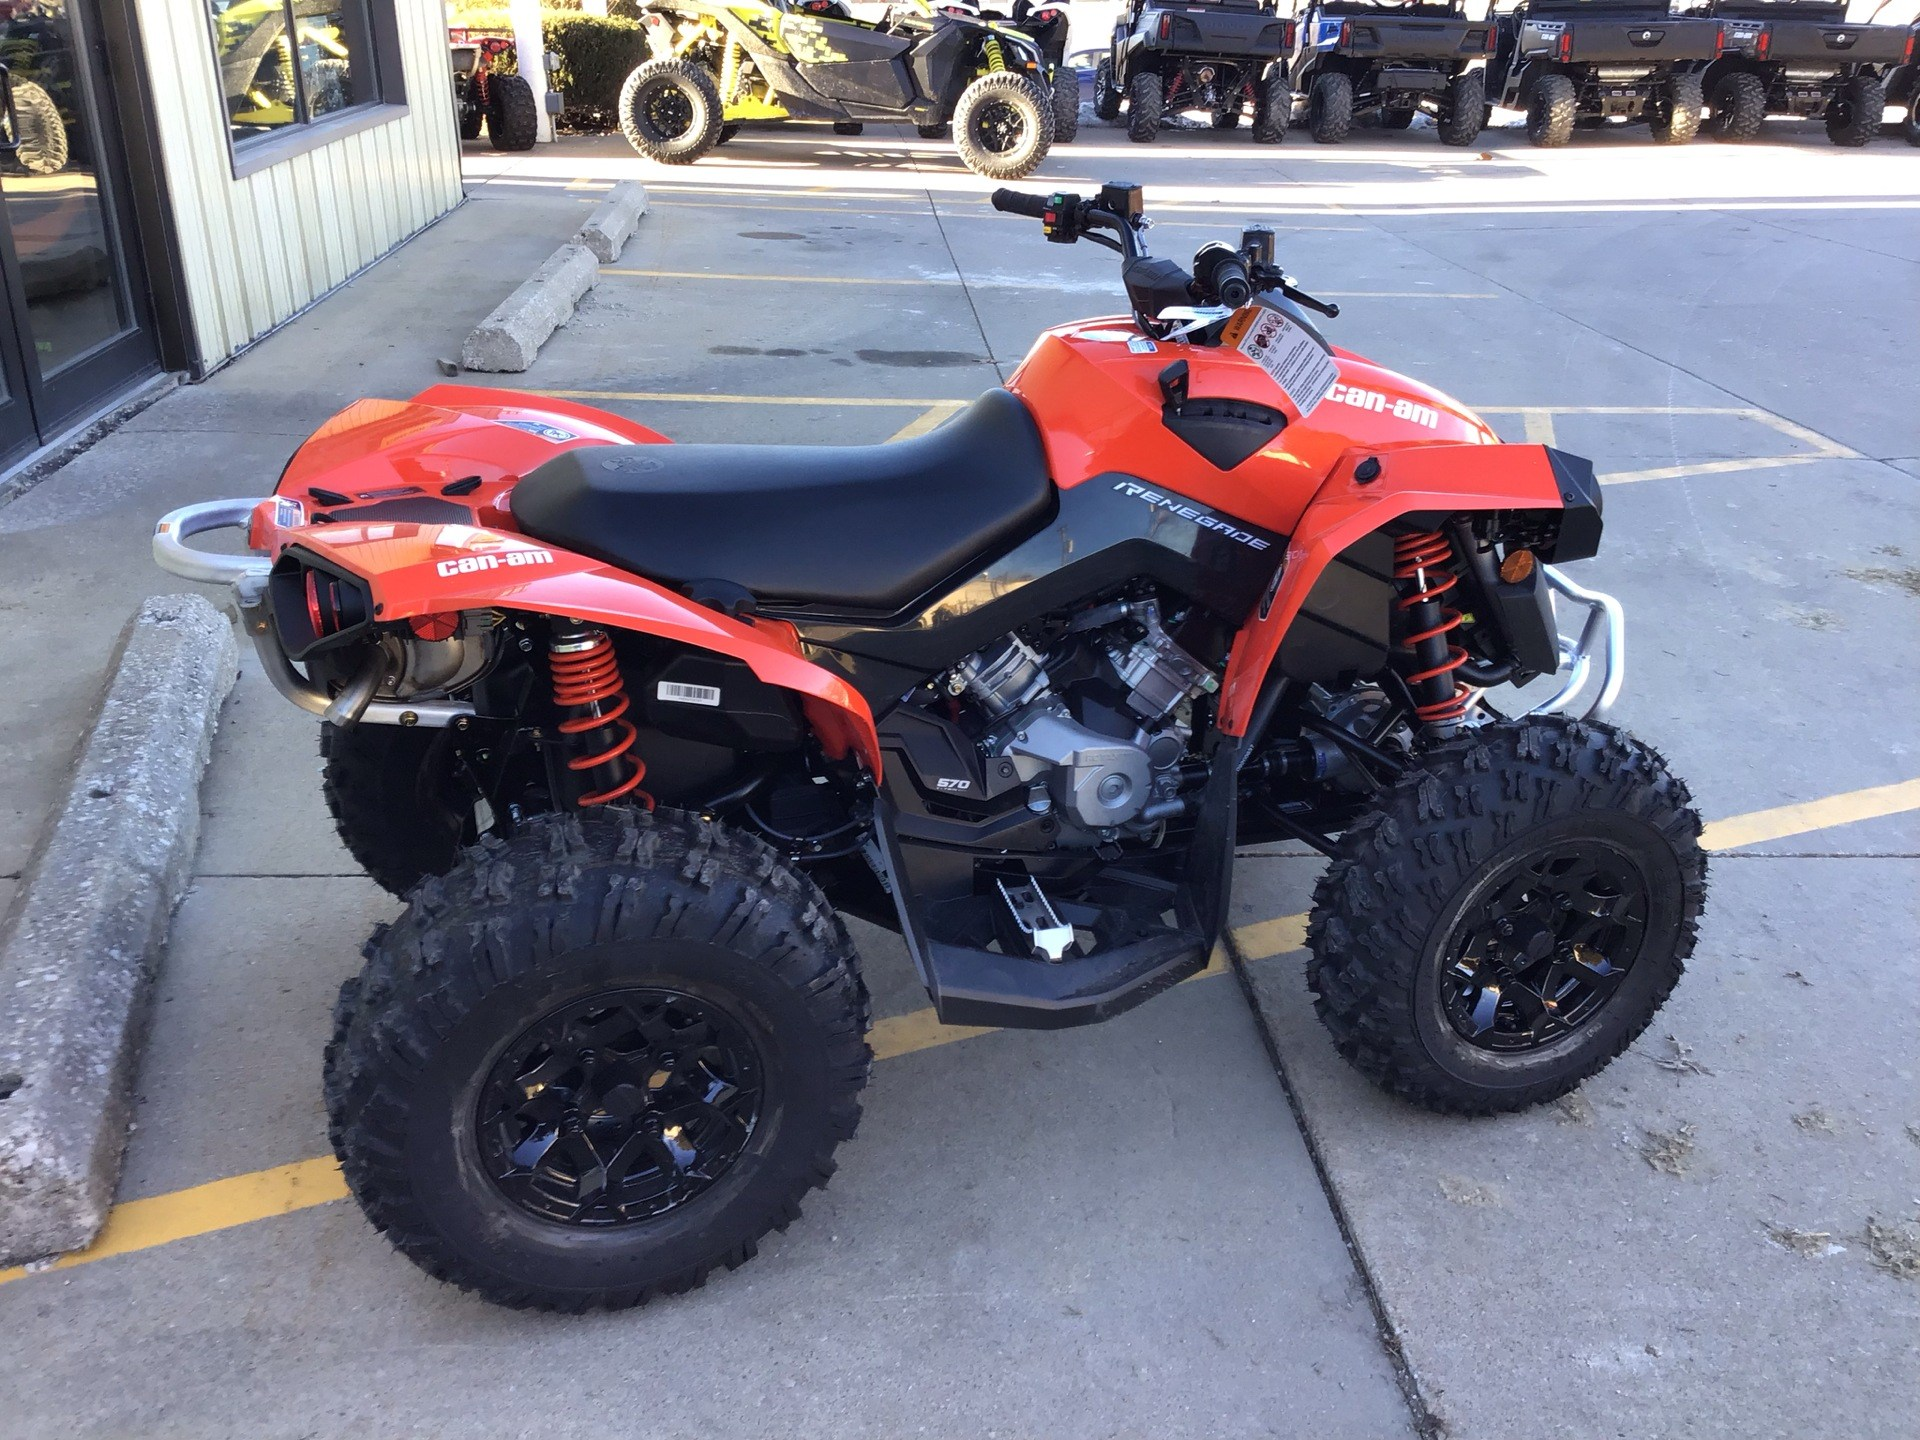 2018 Can-Am Renegade 570 for sale 5358